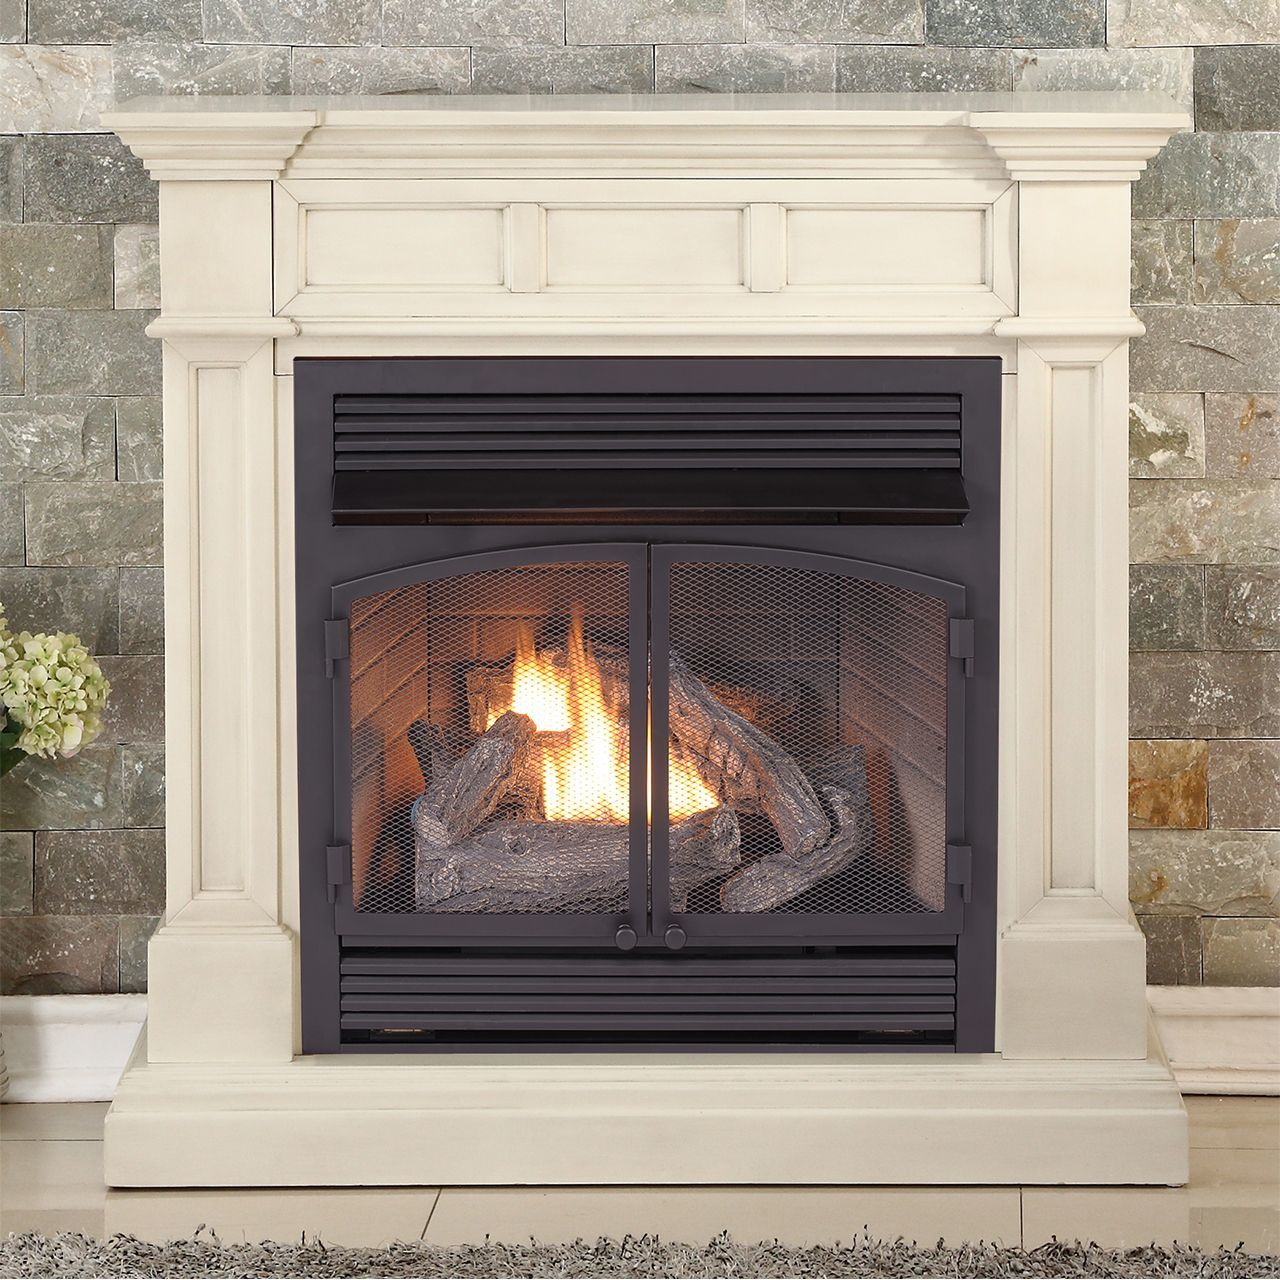 Btu Gas Fireplace Duluth Forge Dual Fuel Ventless Fireplace 32 000 Btu Remote Control Antique White Finish